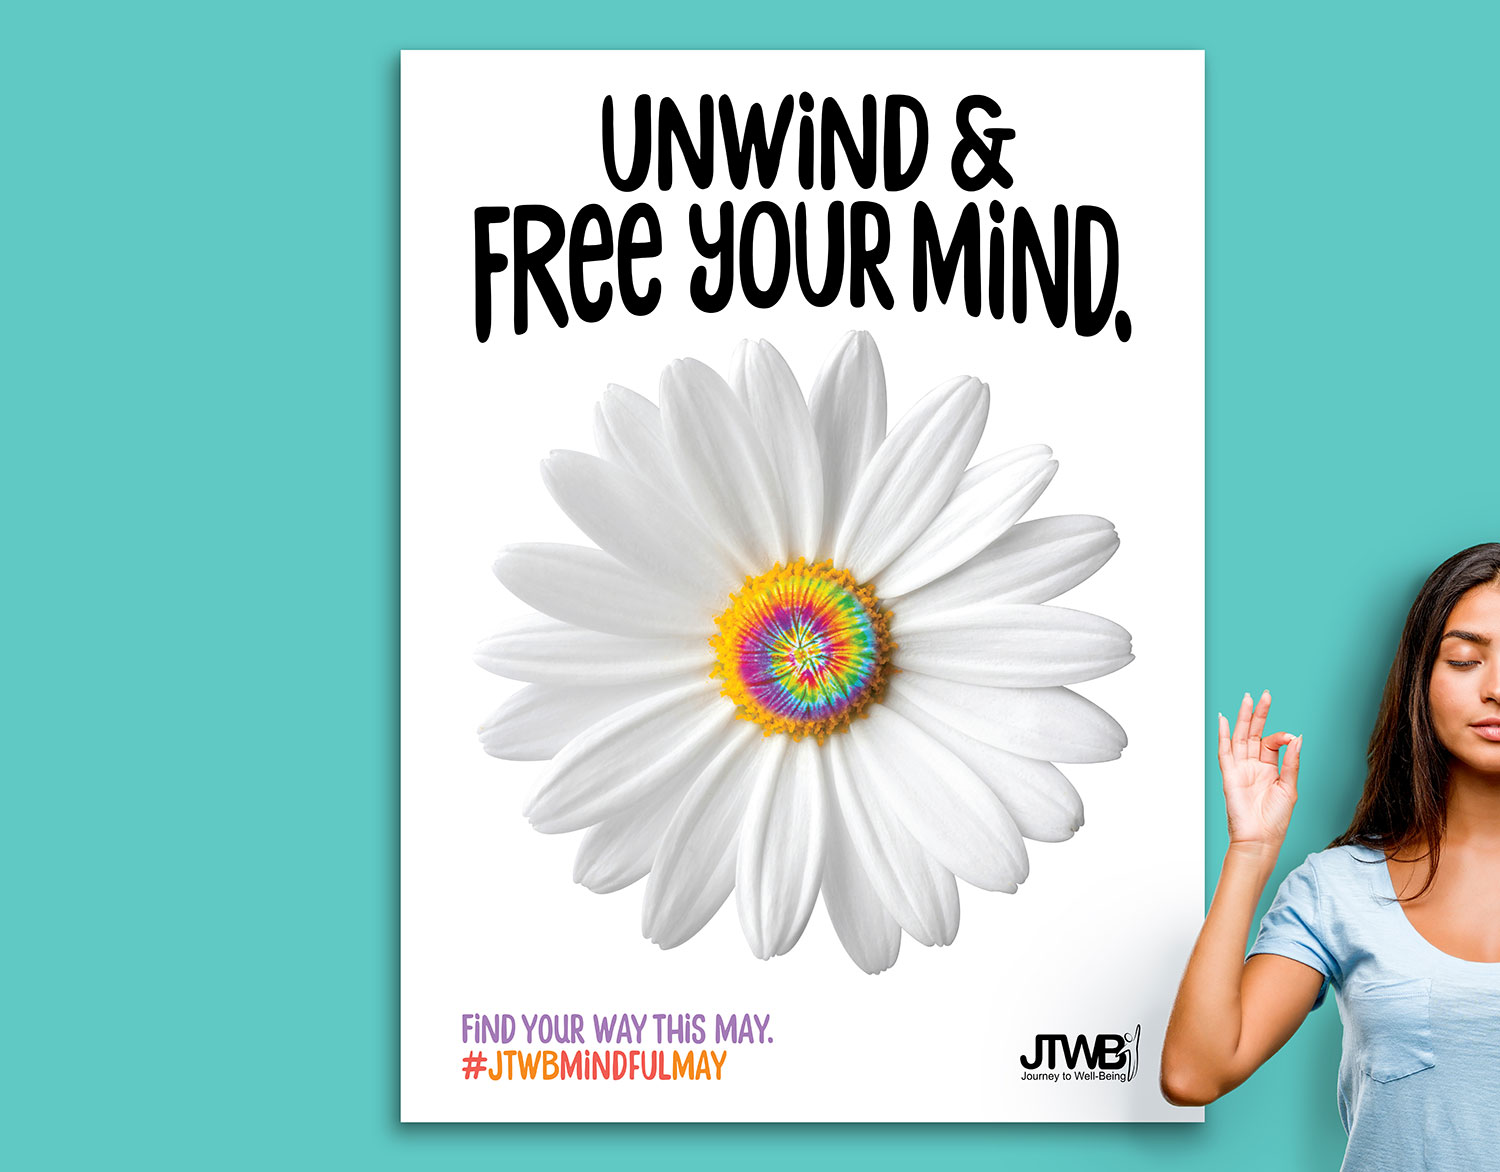 AFFINION-GROUP-MINDFUL-MAY-POSTER-SCENE-SLIDE.jpg